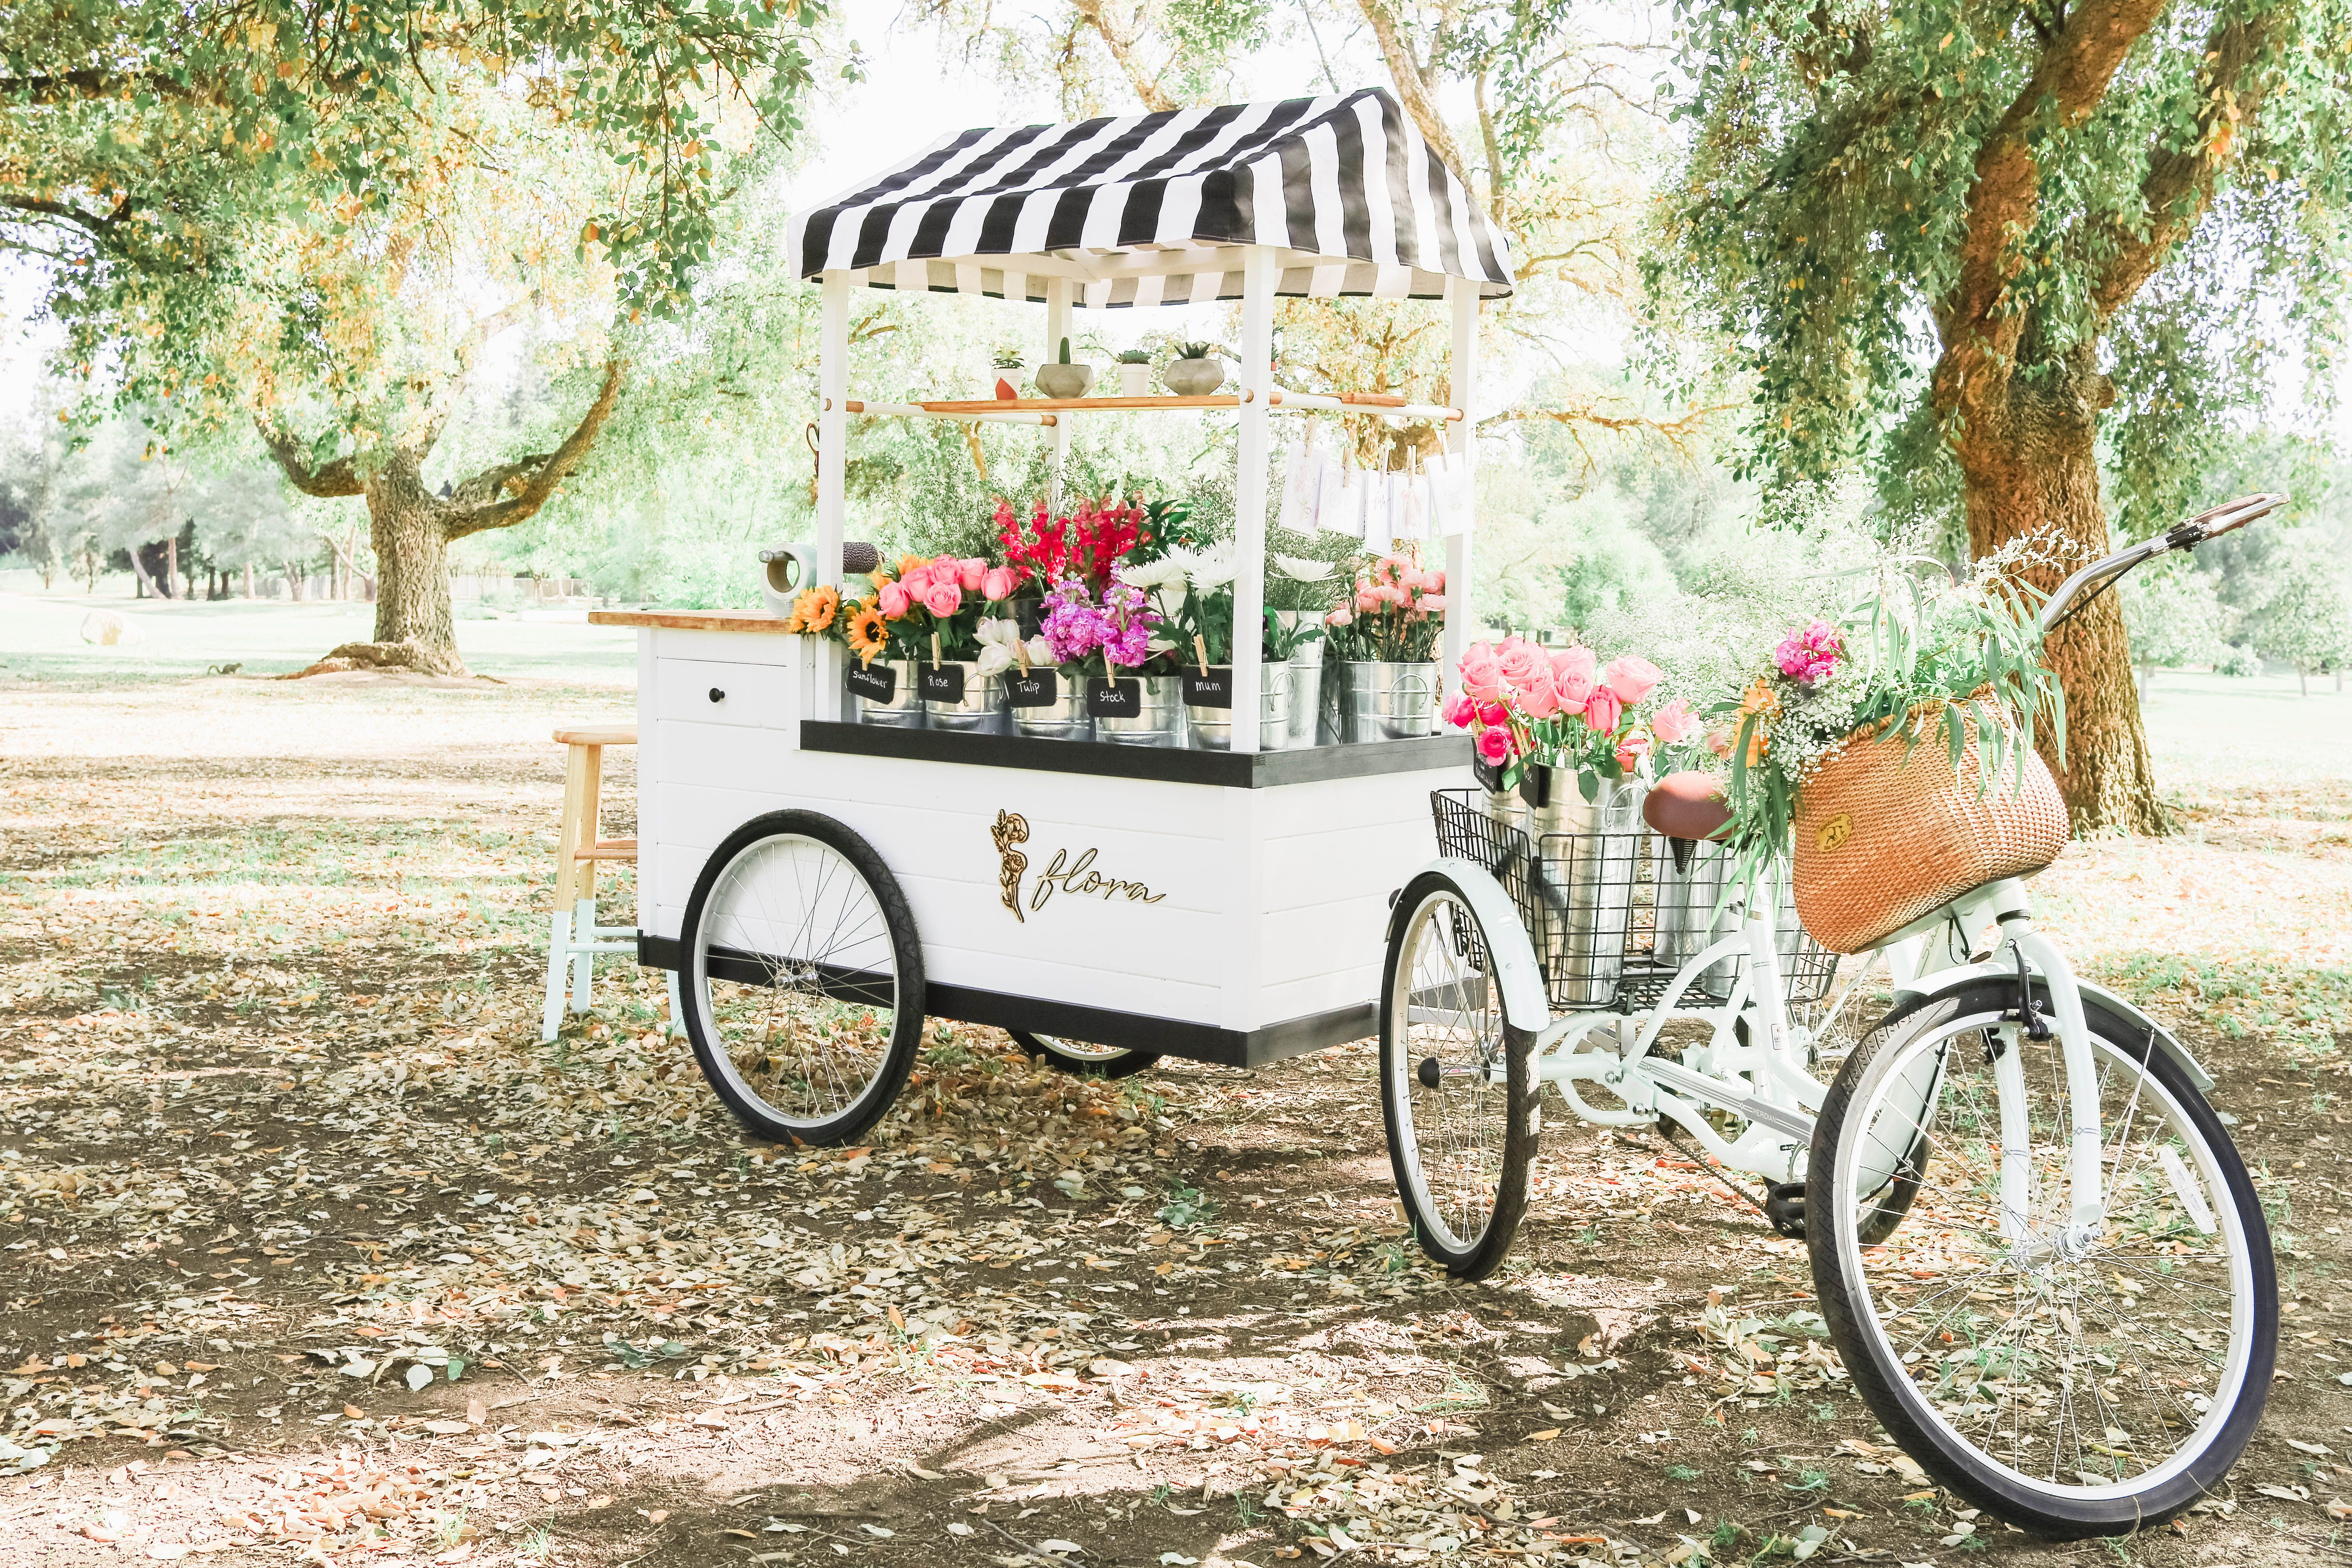 Flora Flower Cart Make Your Own Bouquet In Central California Flower Cart Flower Truck Flower Stands